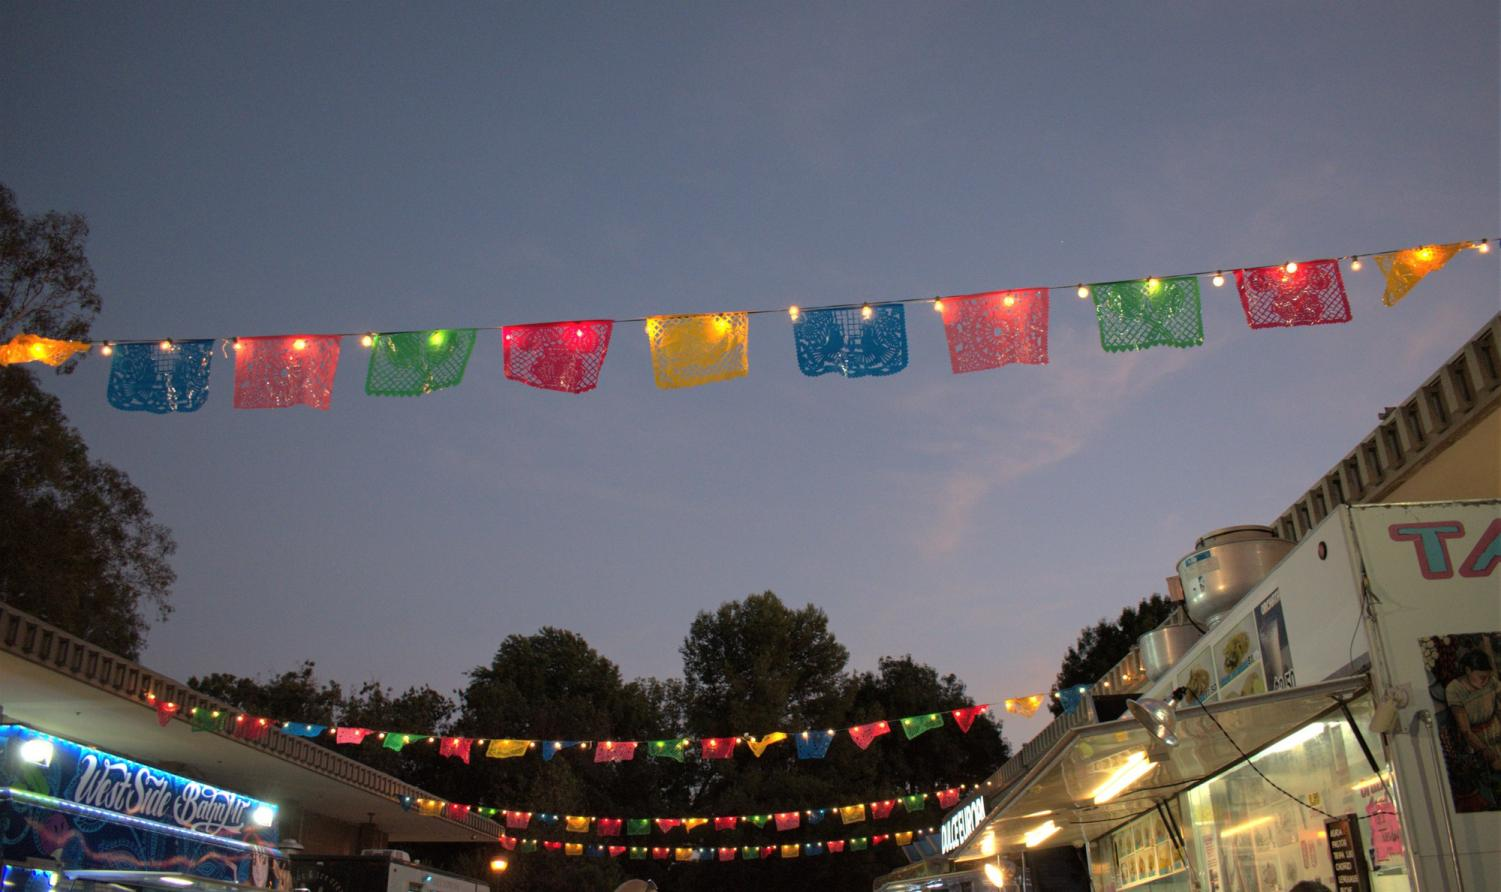 Colorful+decorations+and+bright+lights+were+placed+at+the+Fiesta+Patrias+event.+